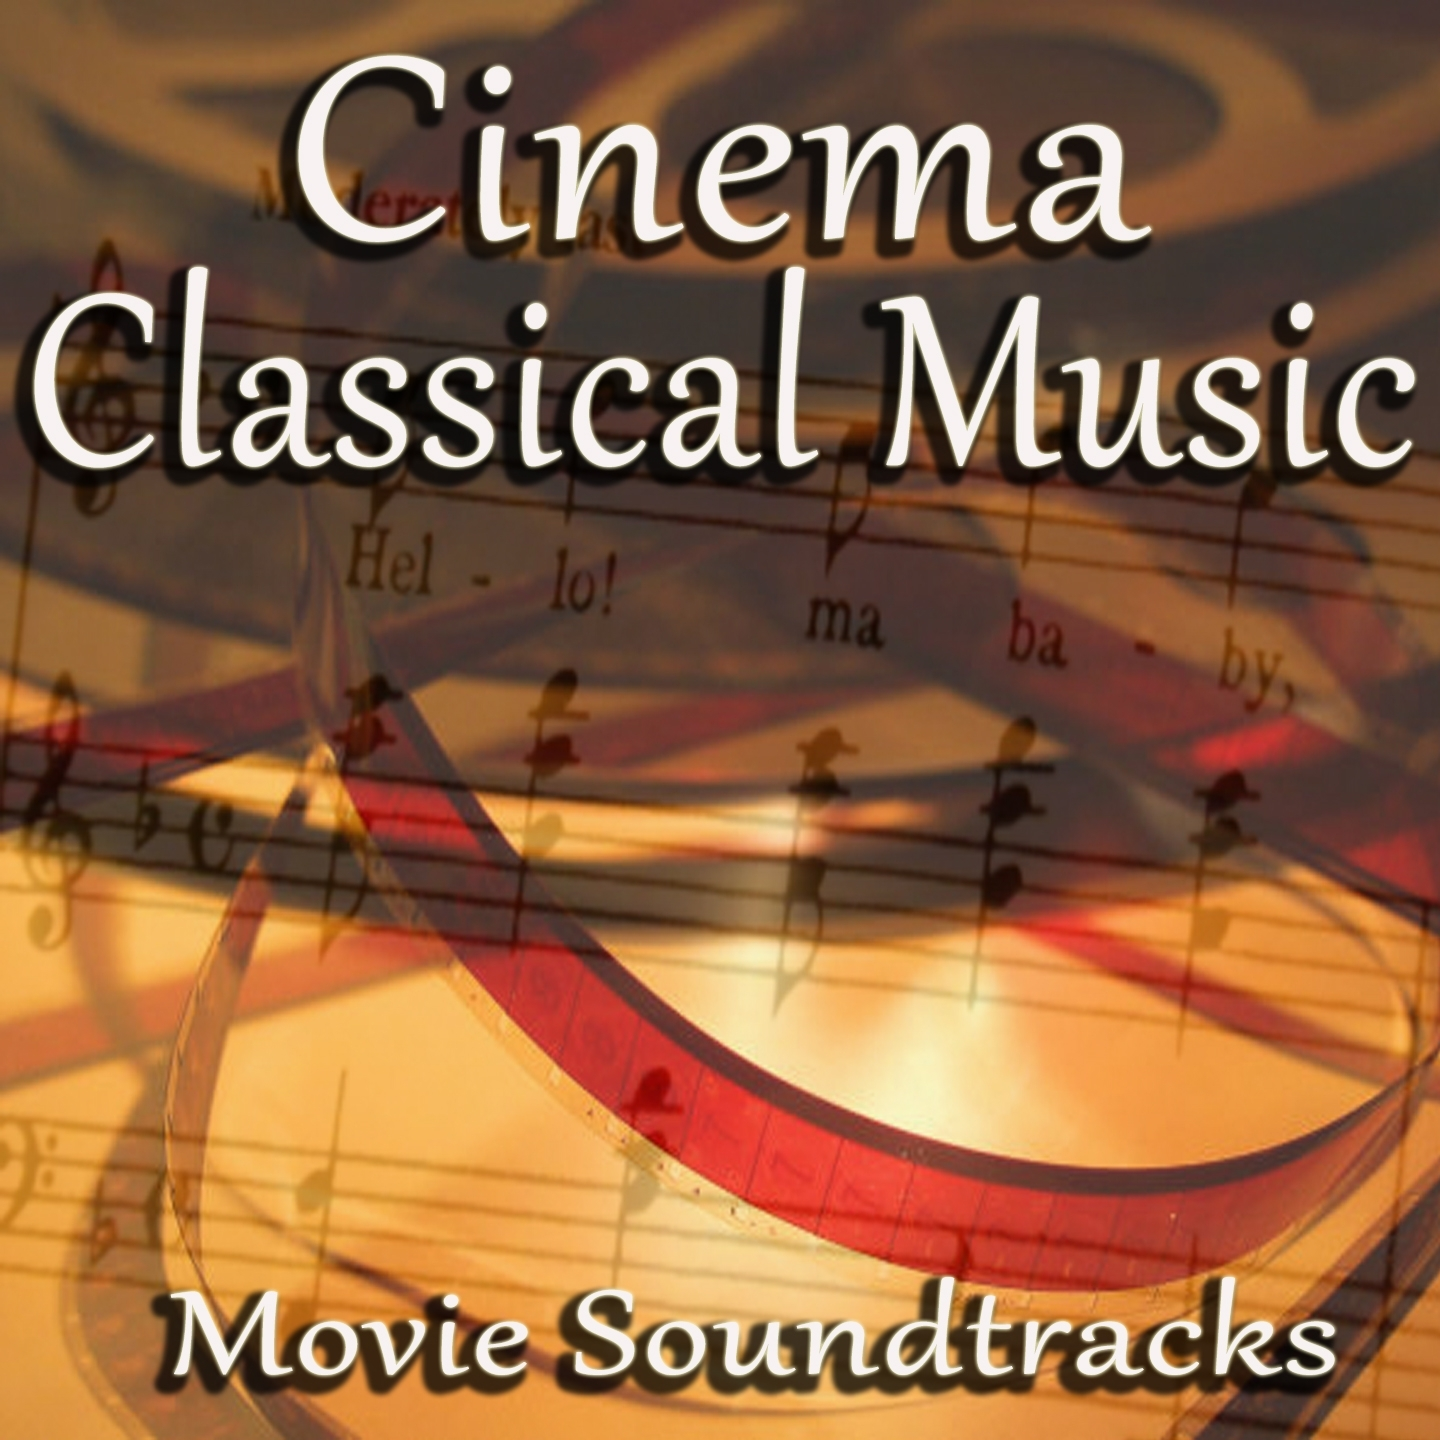 Cinema Classical Music: Movie Soundtracks